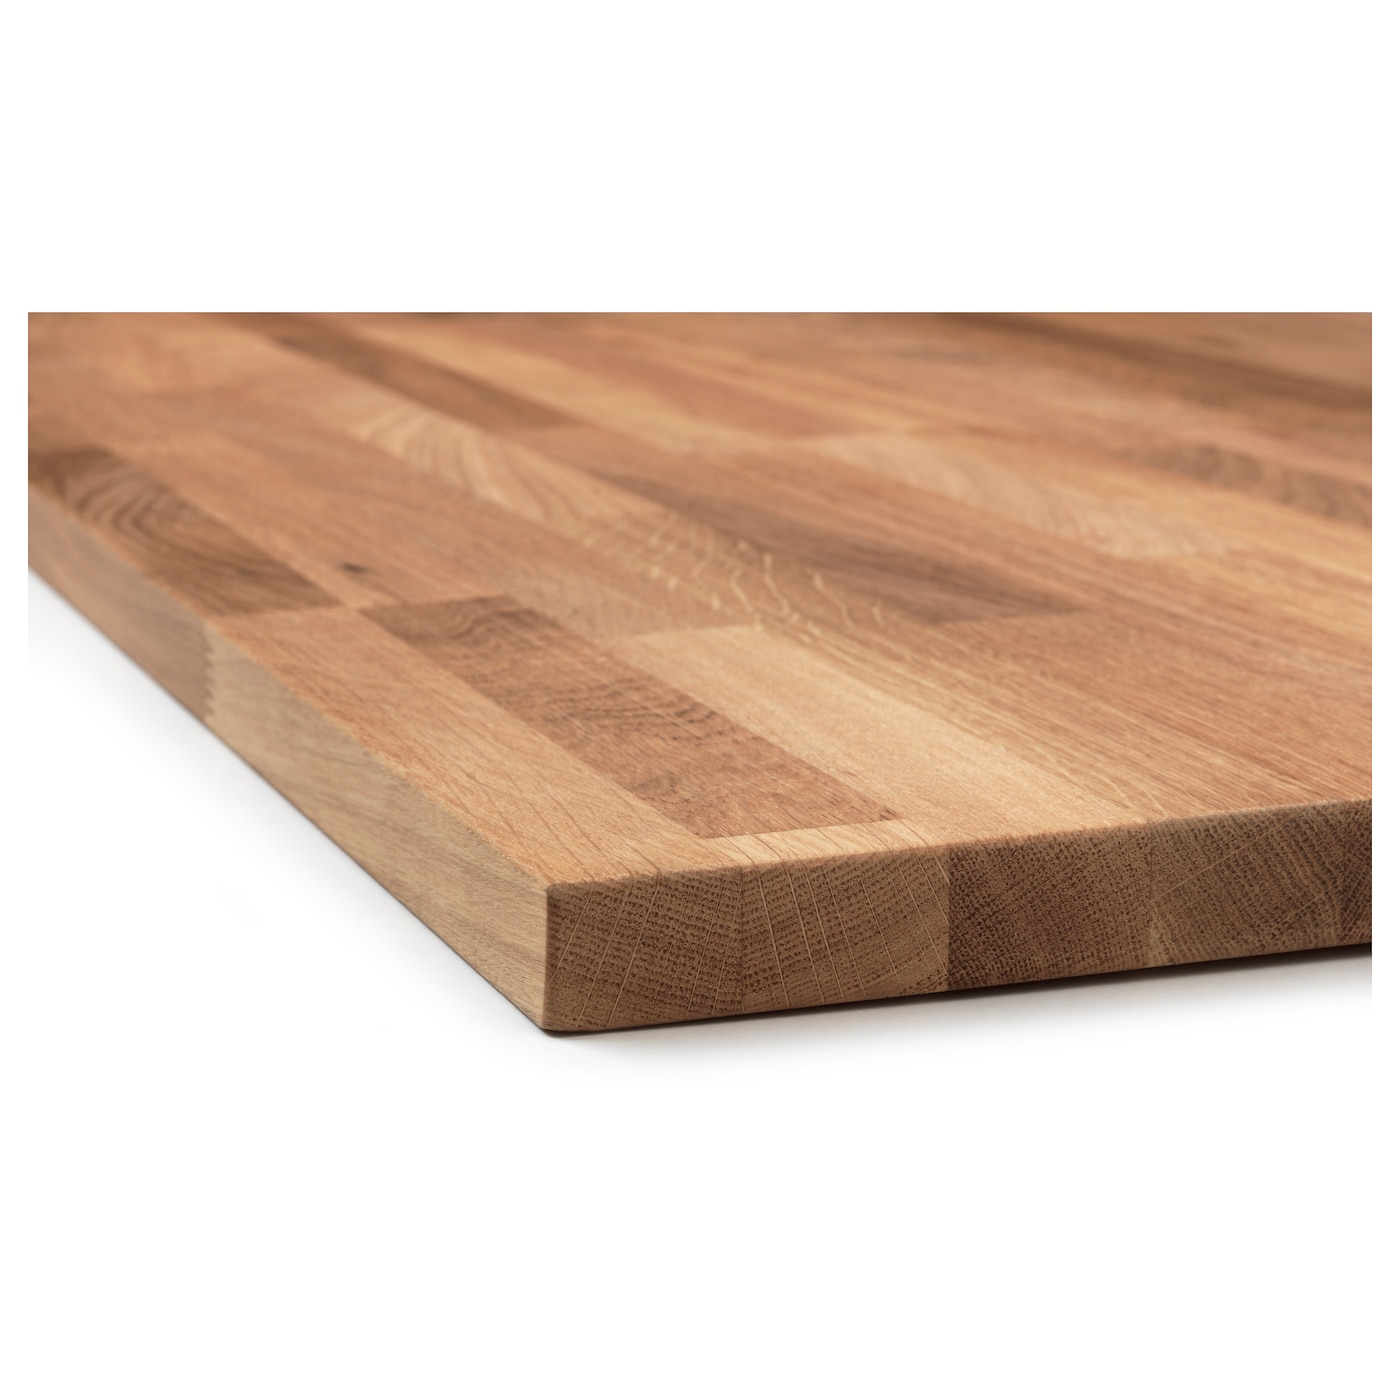 Ikea Hammarp Worktop Solid Wood Can Be Cut To The Desired Length